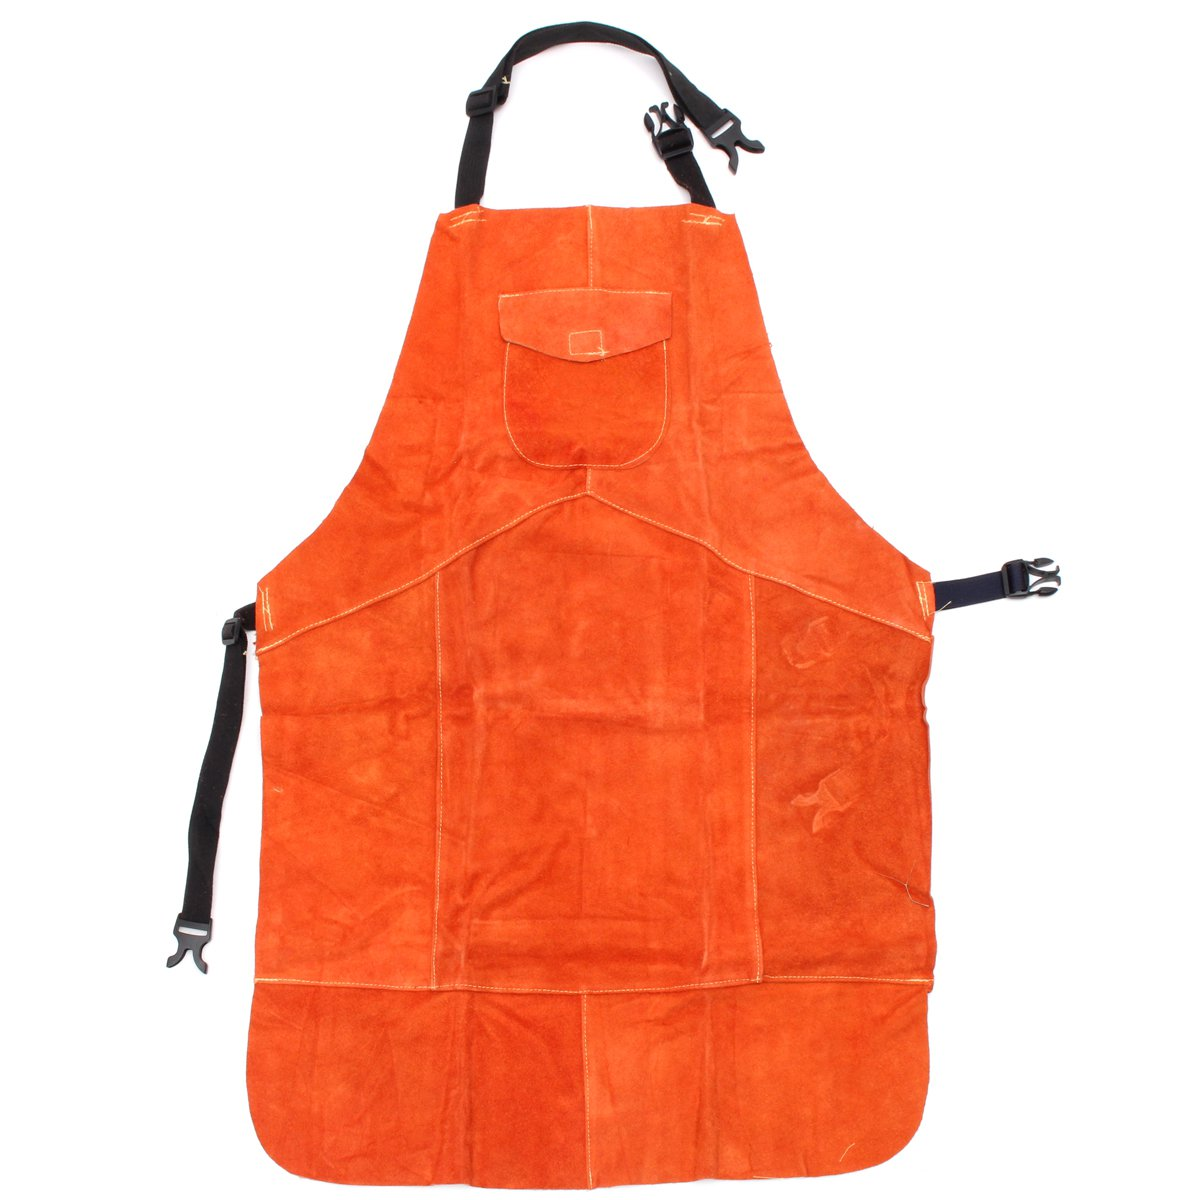 NEW Cowhide Leather Welding Protective Apron Heat Resistant Soldering Mechanic Smock Workplace Safety new safurance leather equipment apron